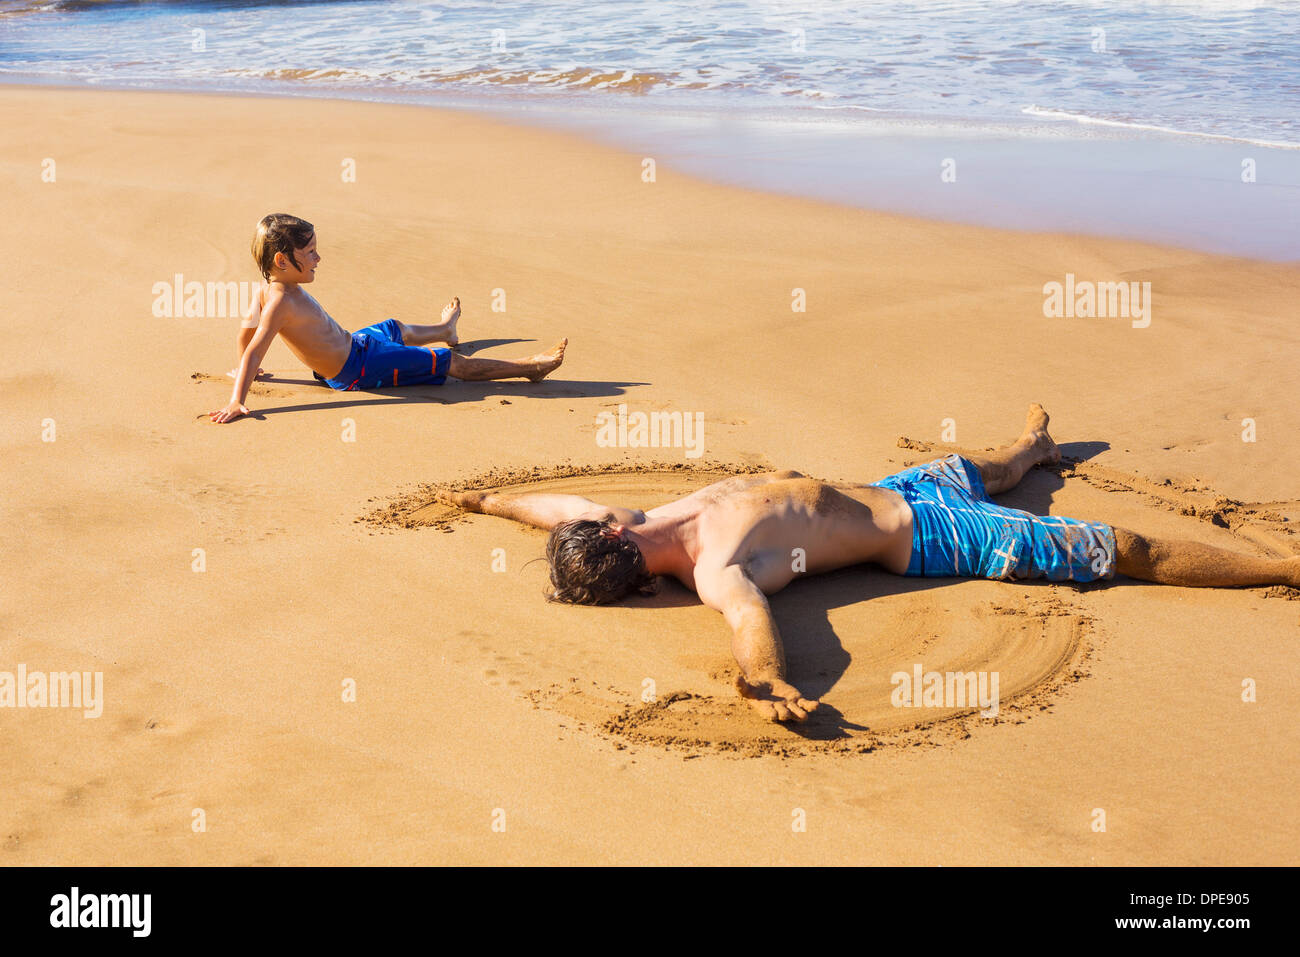 Father and son playing together in the sand on tropical beach on vacation - Stock Image